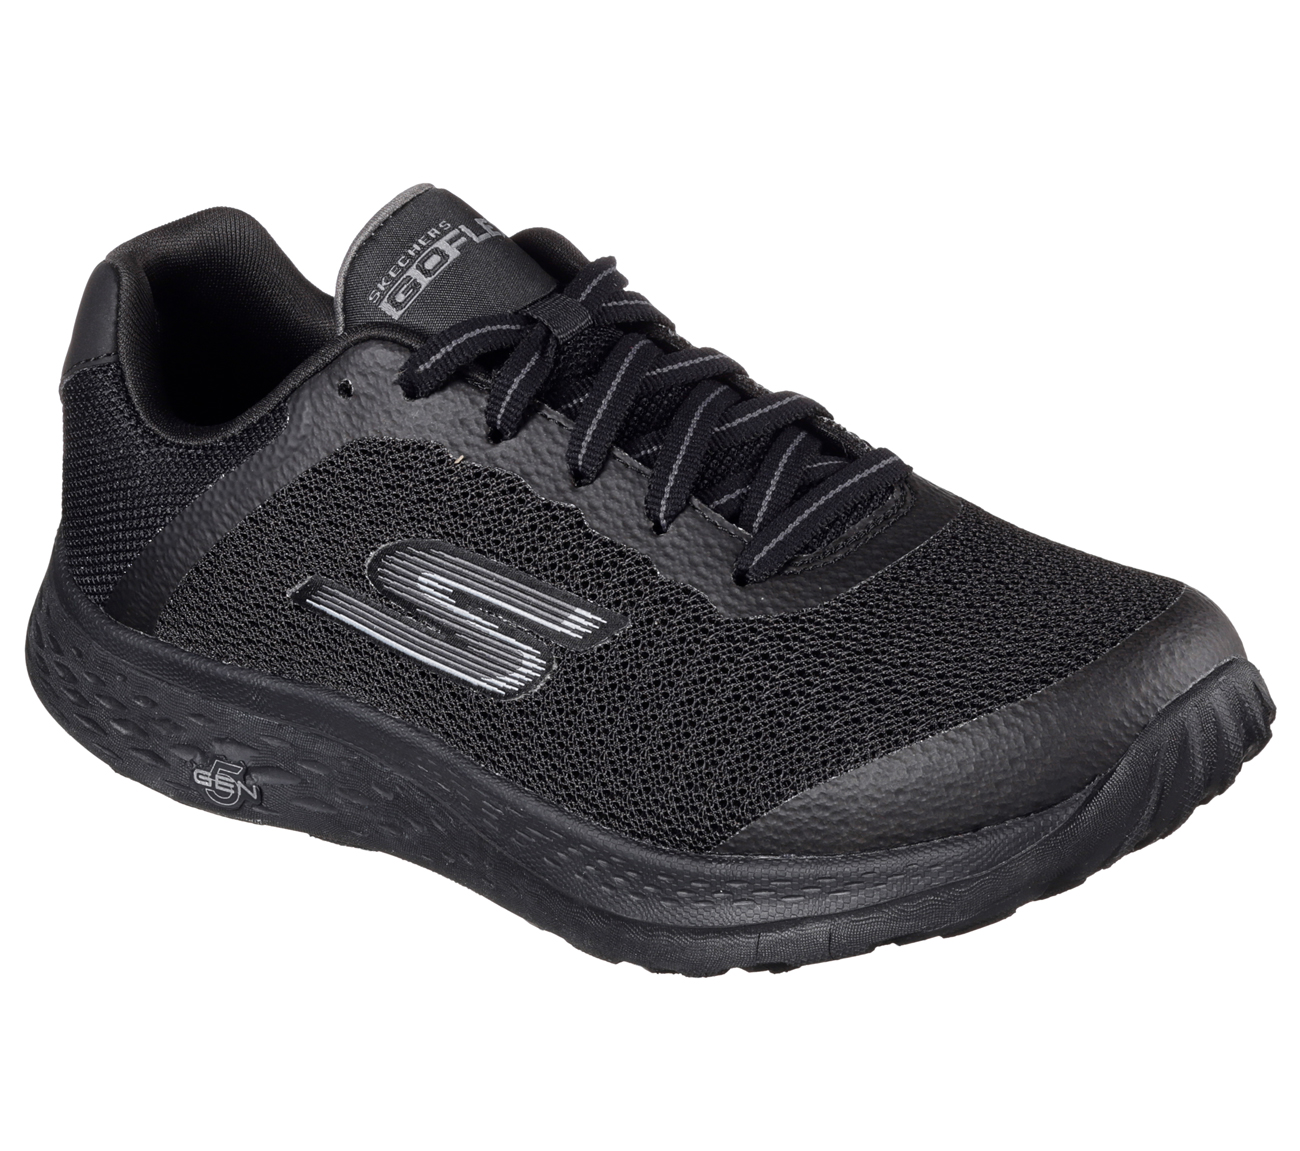 buy skechers skechers go flex ultra walking shoes shoes. Black Bedroom Furniture Sets. Home Design Ideas